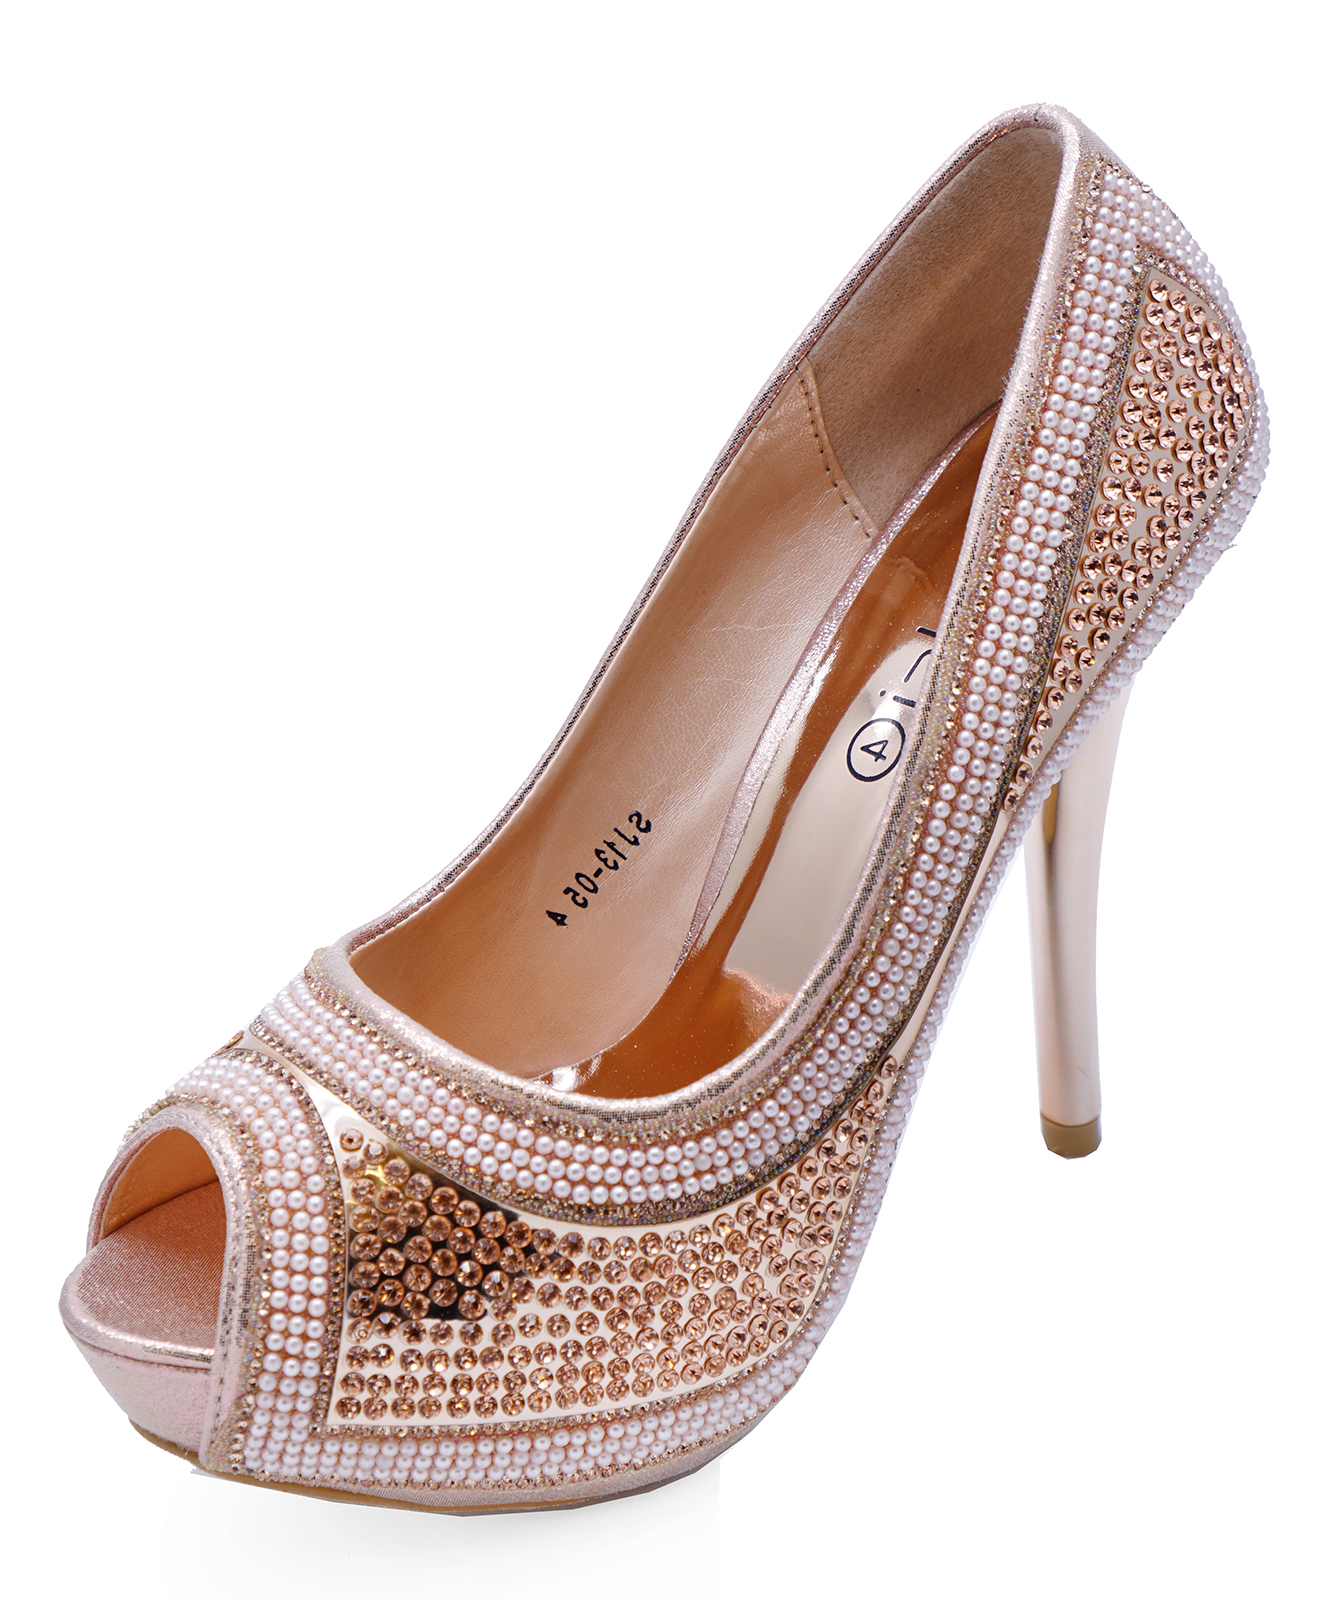 fdbc73ab62f5 Sentinel WOMENS ROSE GOLD DIAMANTE PLATFORM OPEN-TOE STILETTO SLIP-ON SHOES  SIZES 3-